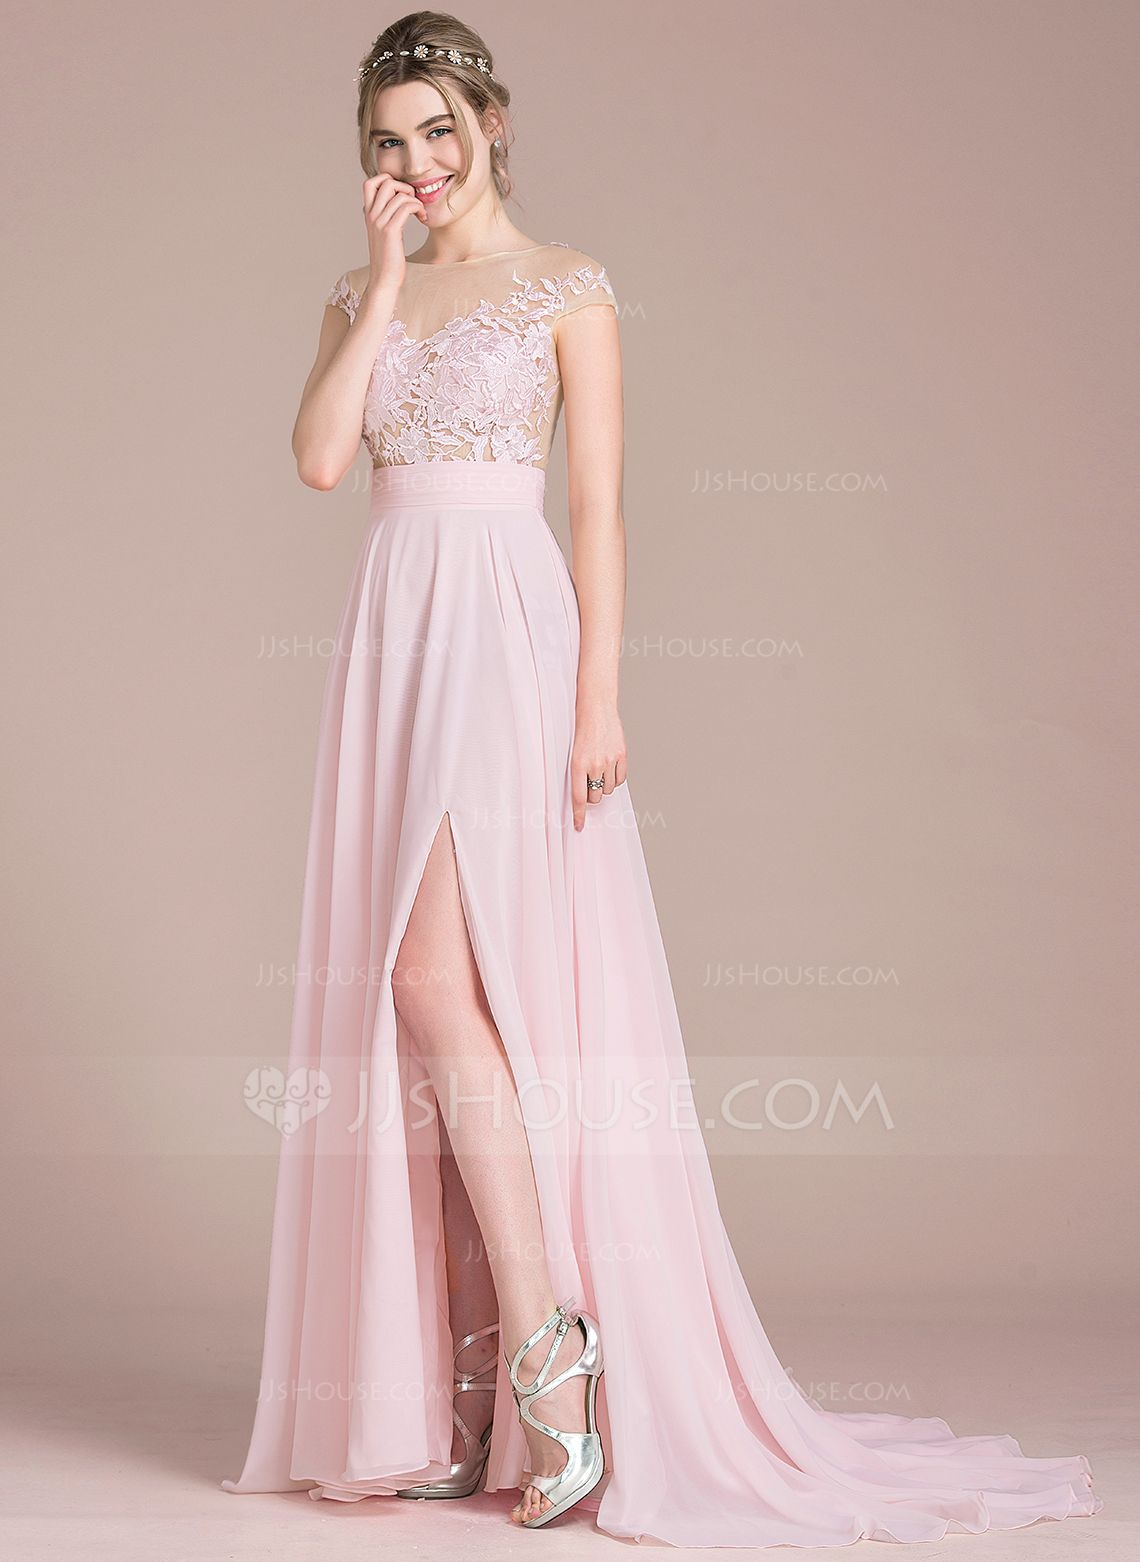 Jjshouse as the global leading online retailer provides a large jjshouse as the global leading online retailer provides a large variety of wedding dresses ombrellifo Gallery